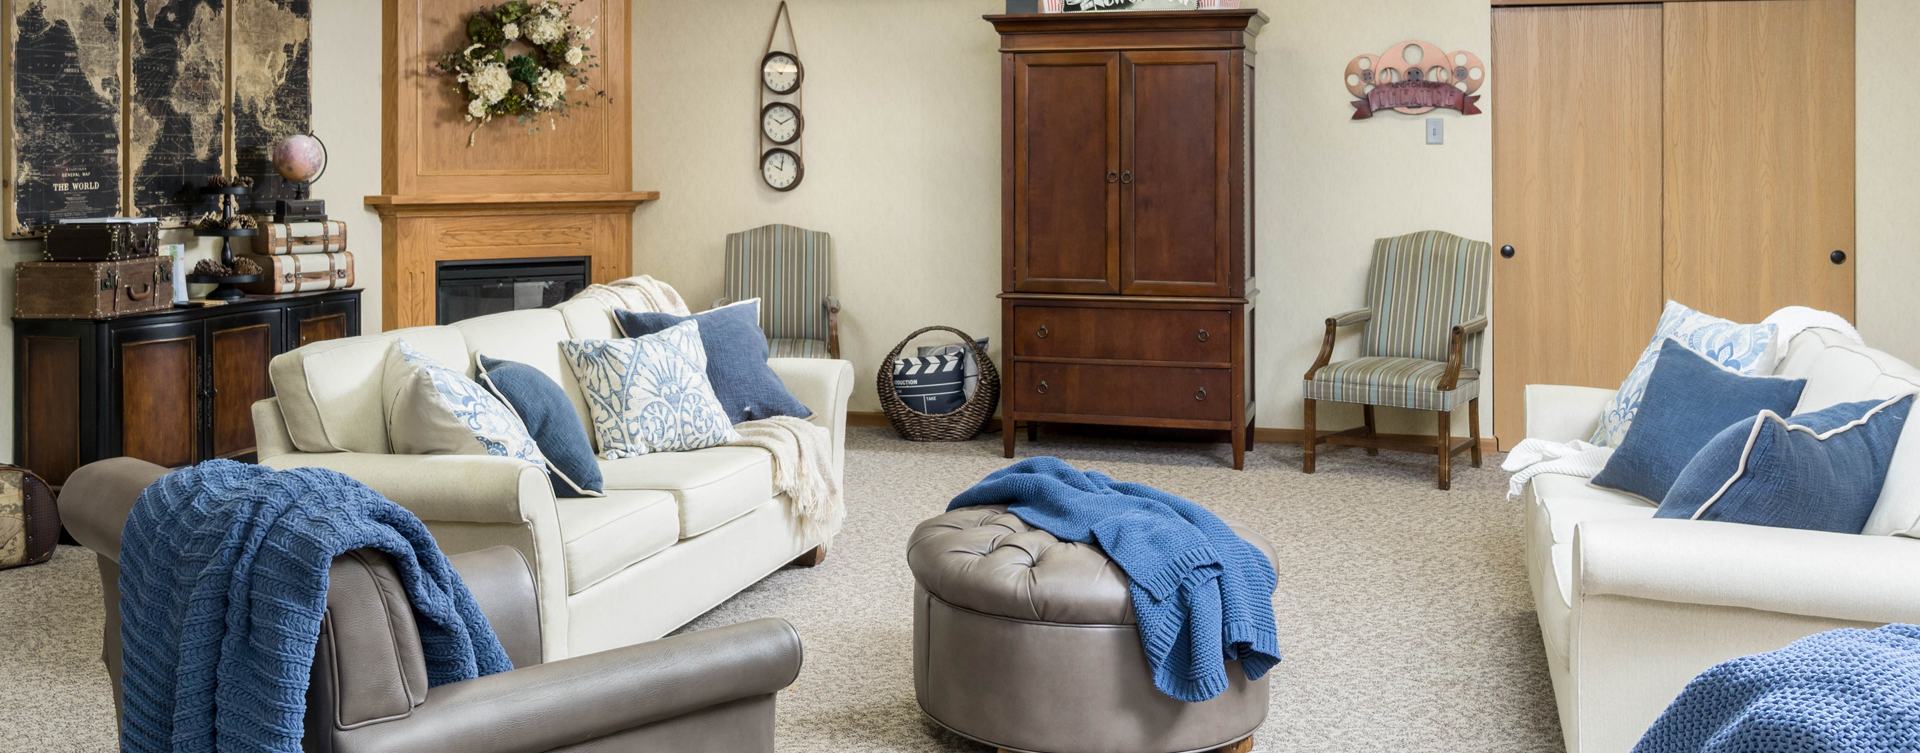 Residents can enjoy furniture covered in cozy fabrics in the Mary B's living room at Bickford of Middletown